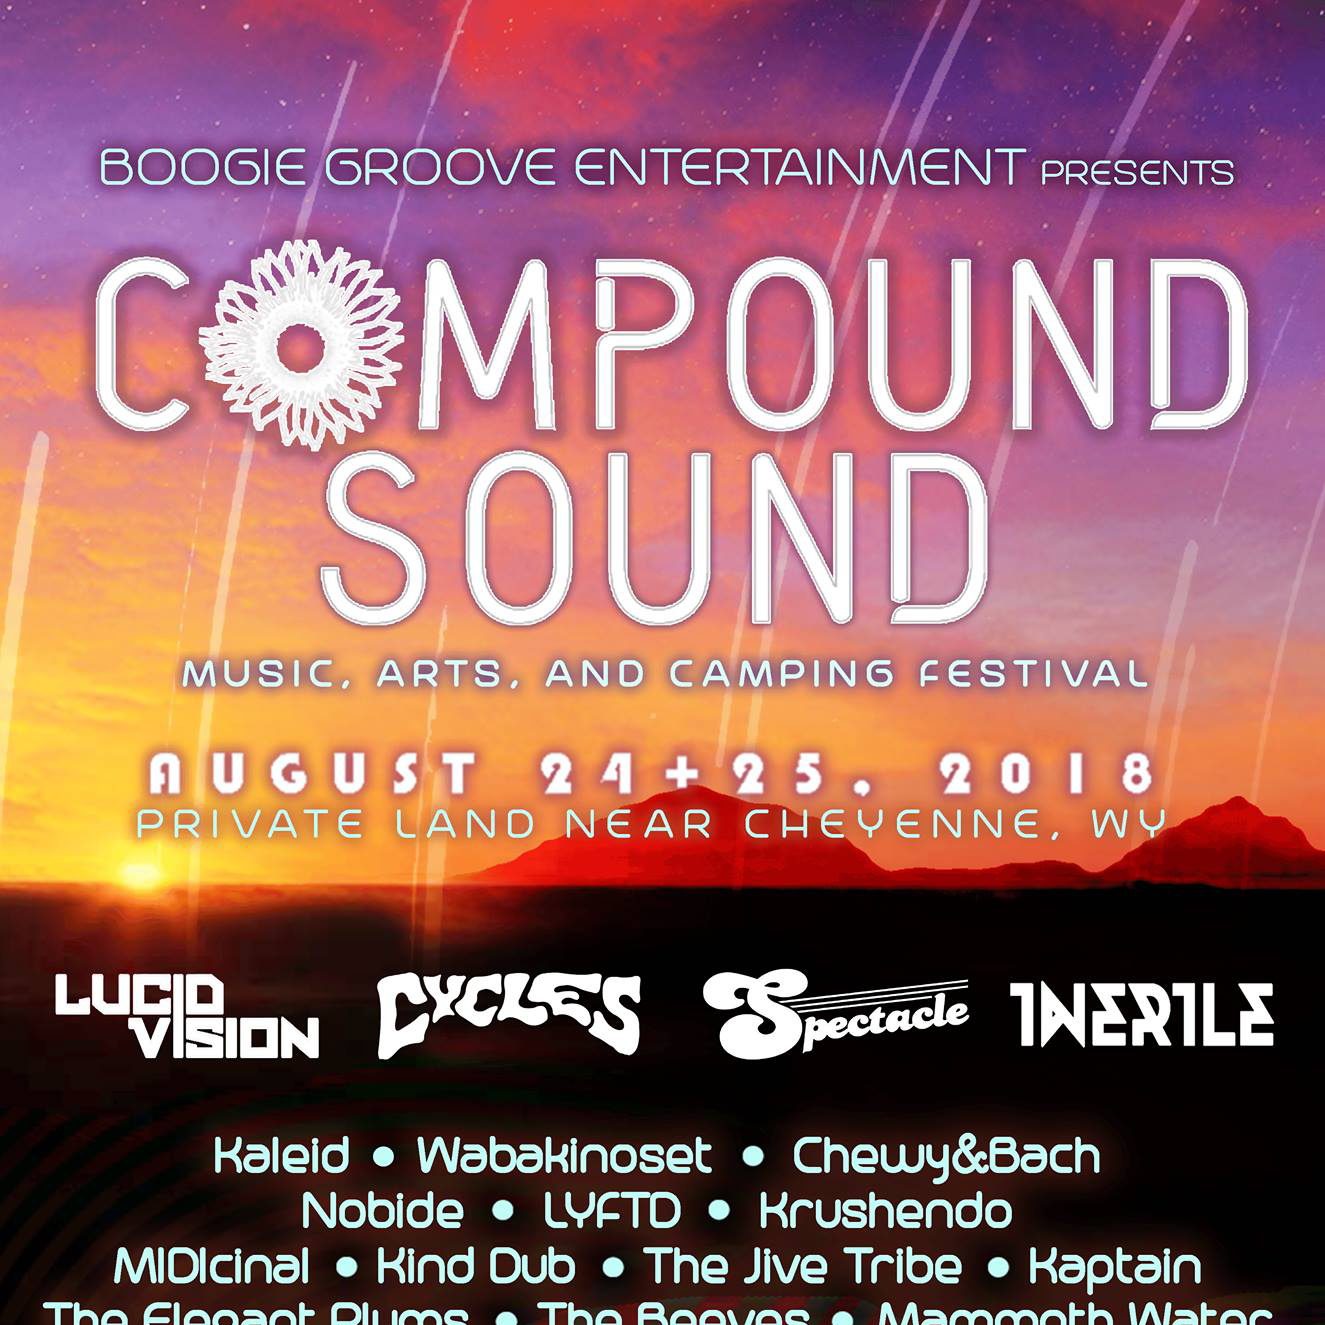 From Throwing Small Events To Producing A Festival: James Bedwell Talks Compound Sound Festival